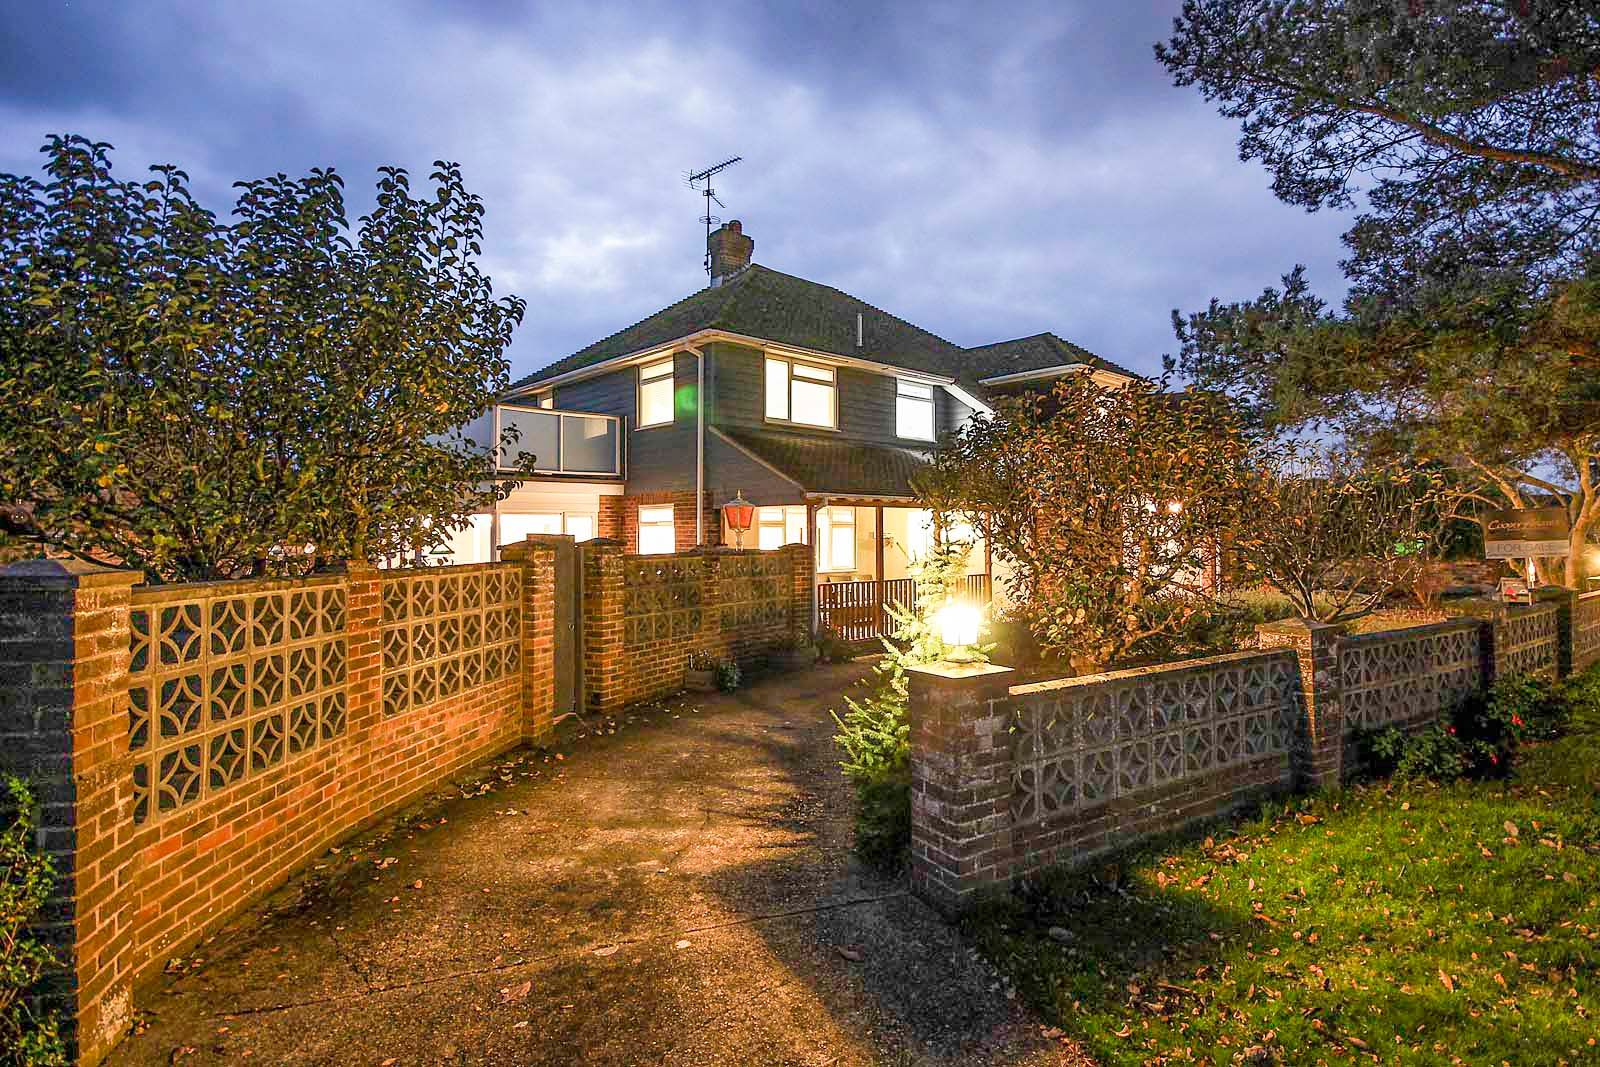 4 bed House for sale in Rustington - Twilight picture (Property Image 1)